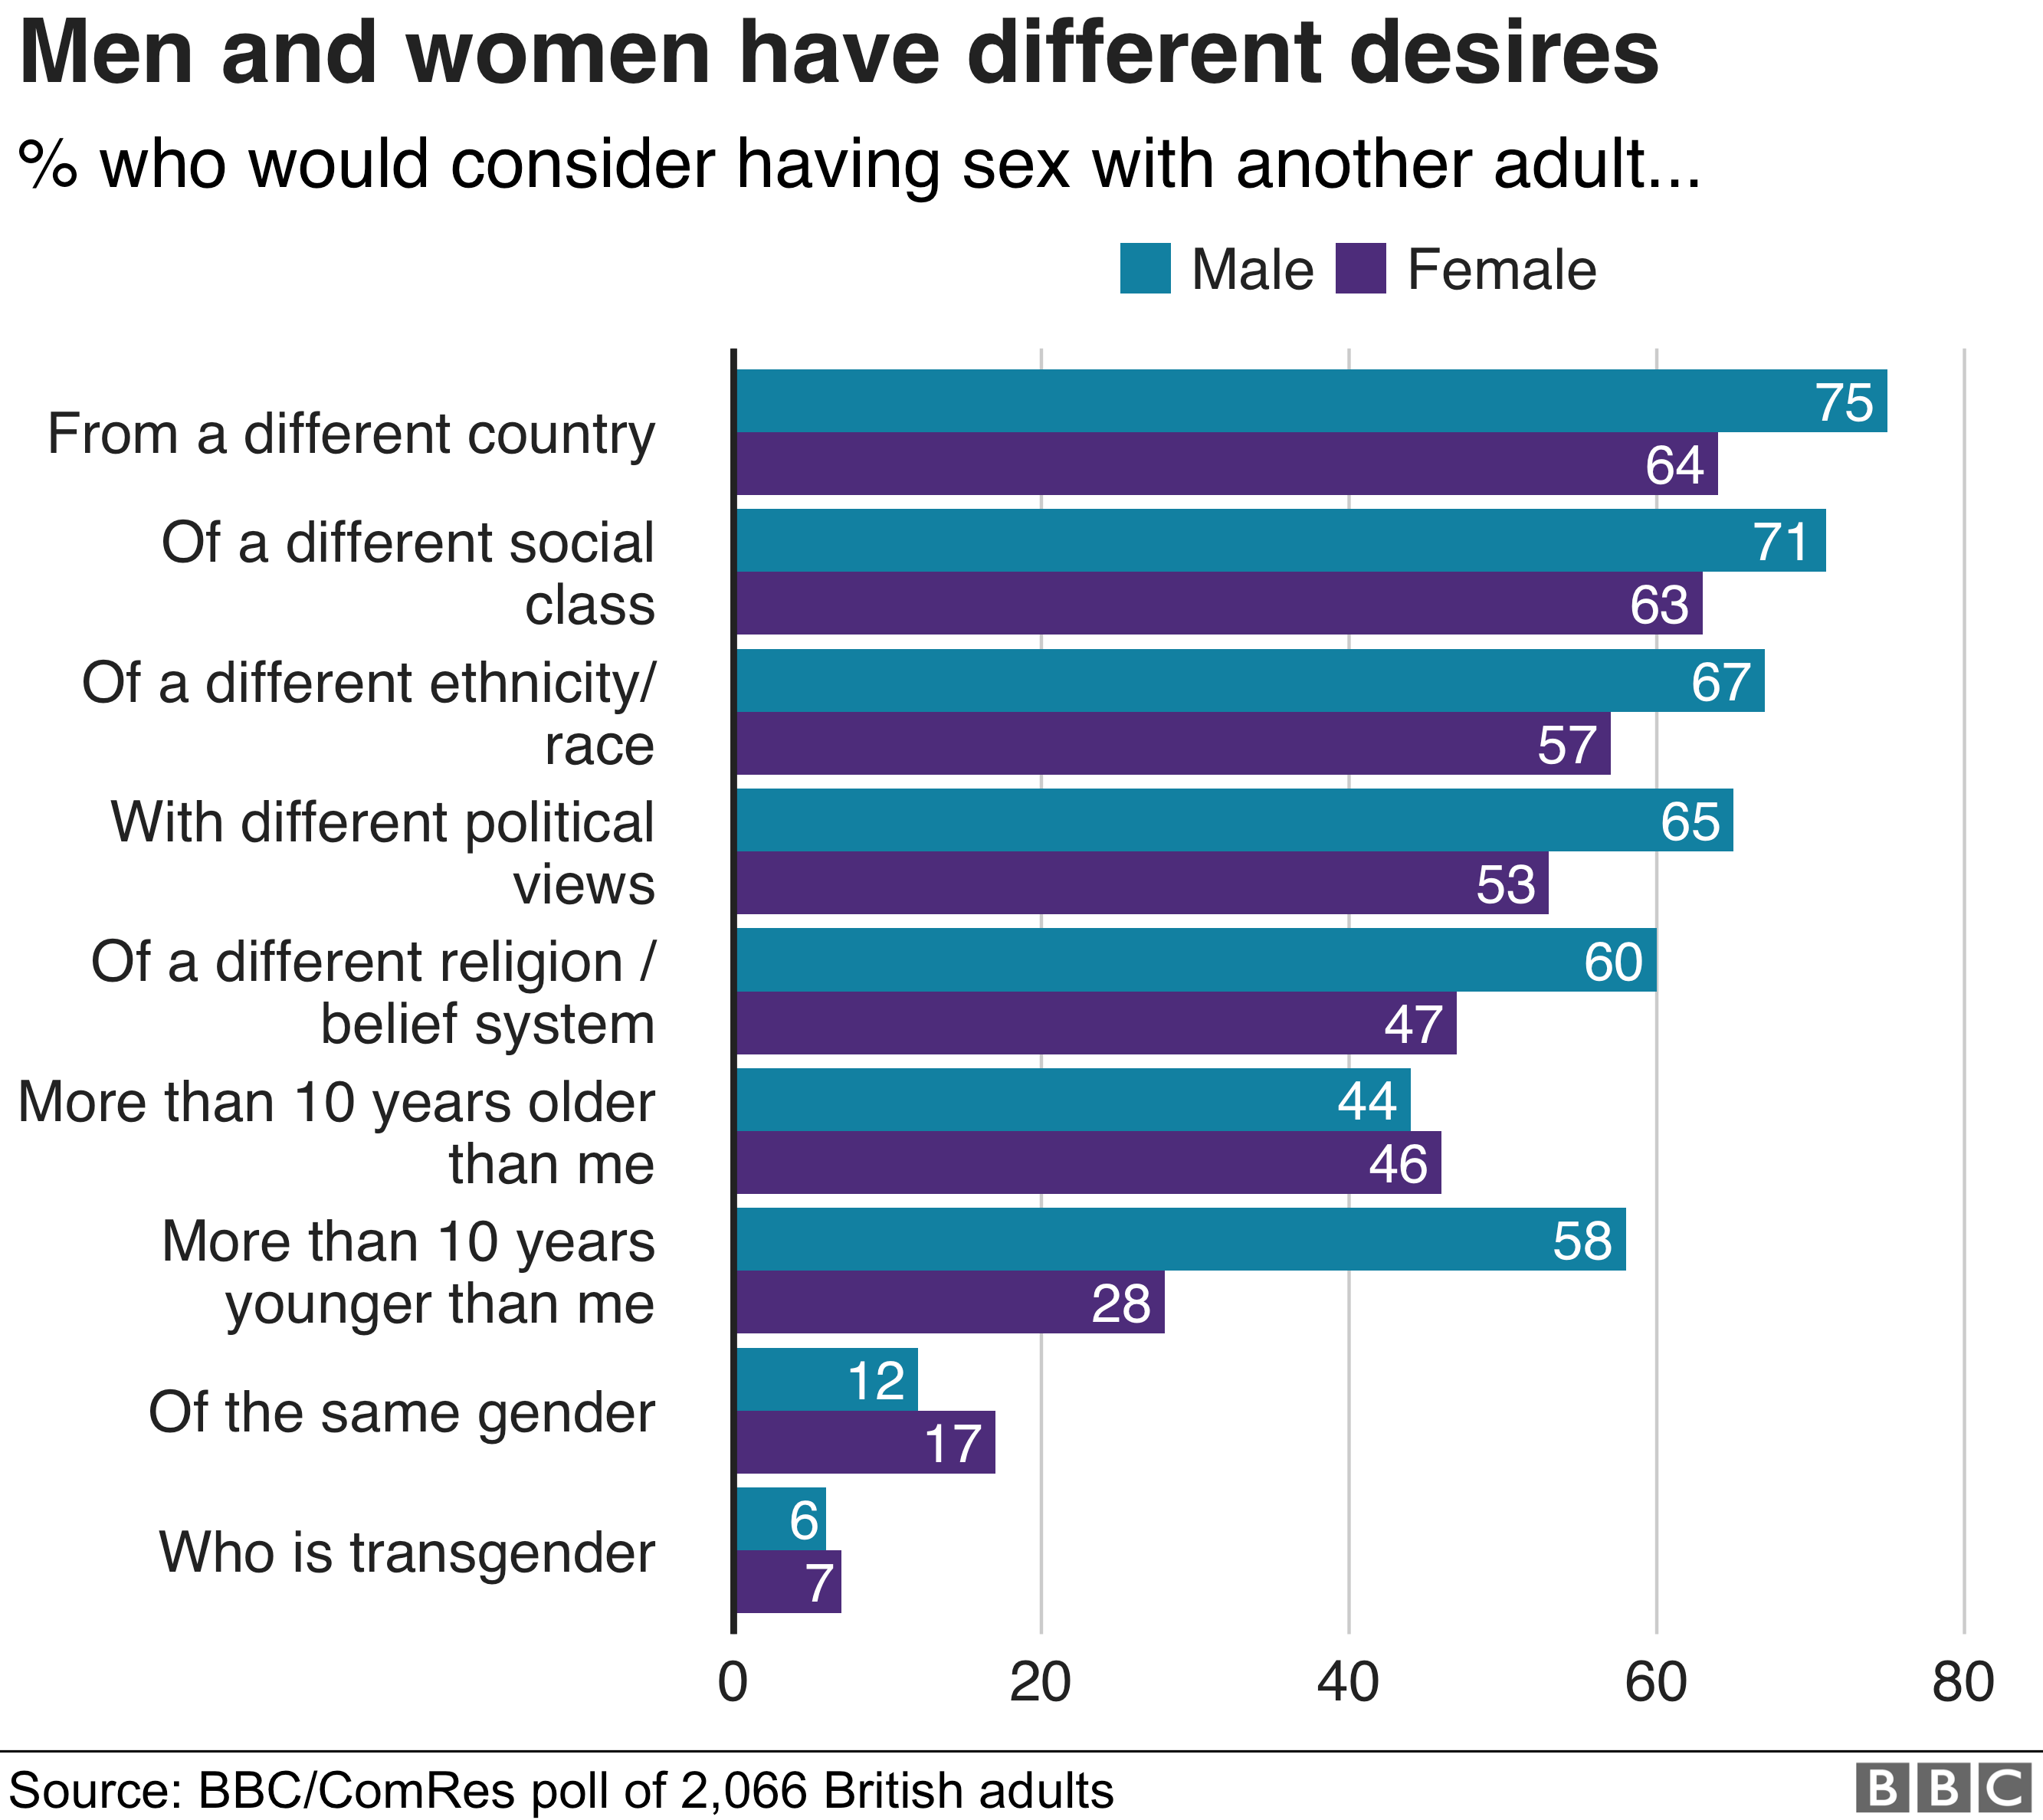 Chart showing different desires